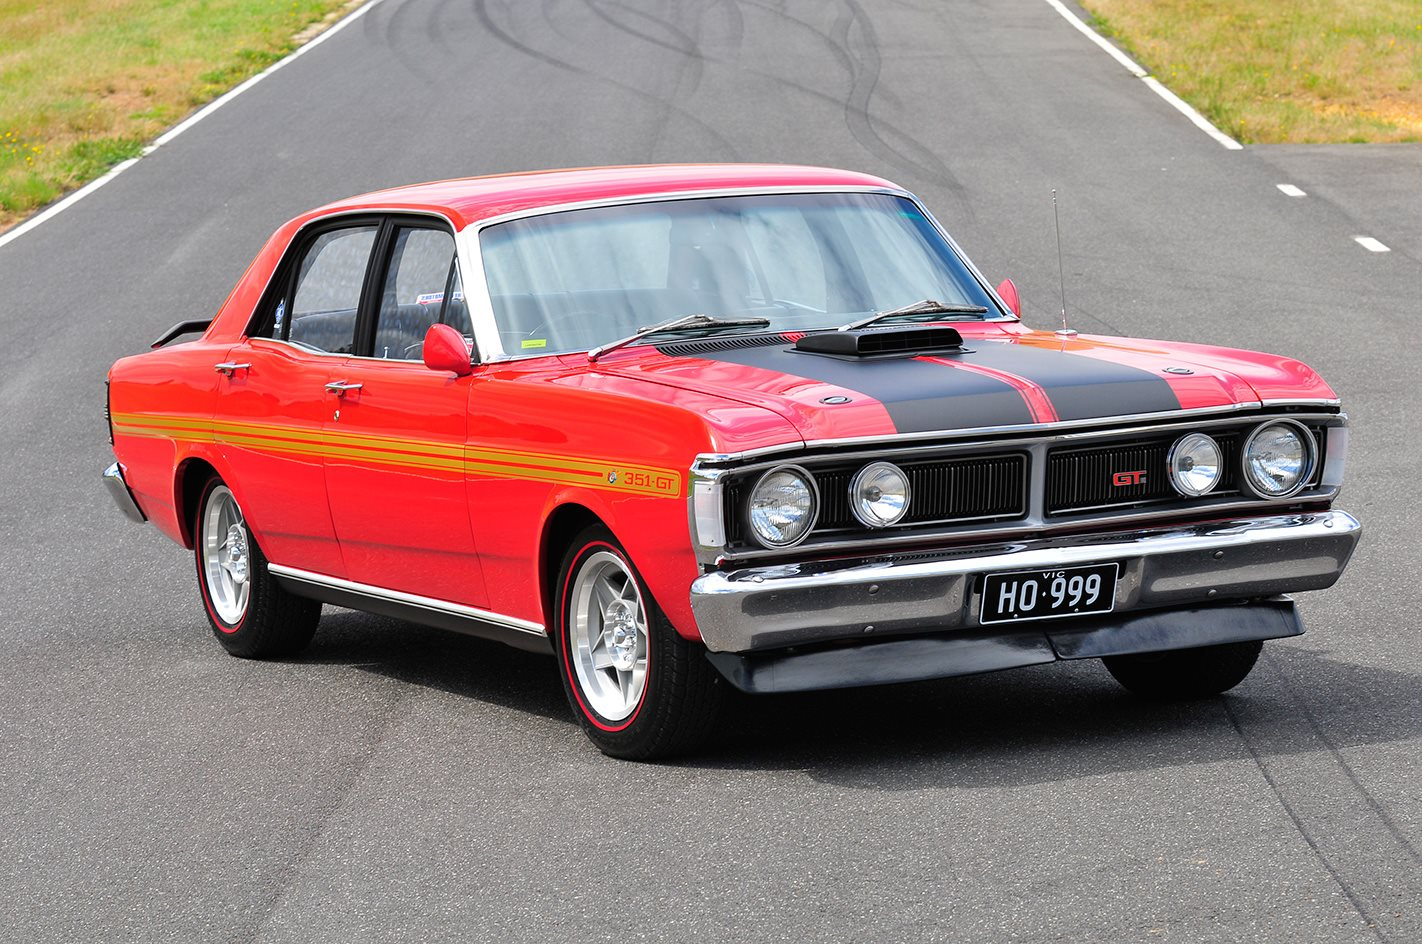 1971 Ford Falcon Xy Gt Ho Phase Iii Quick History Lesson